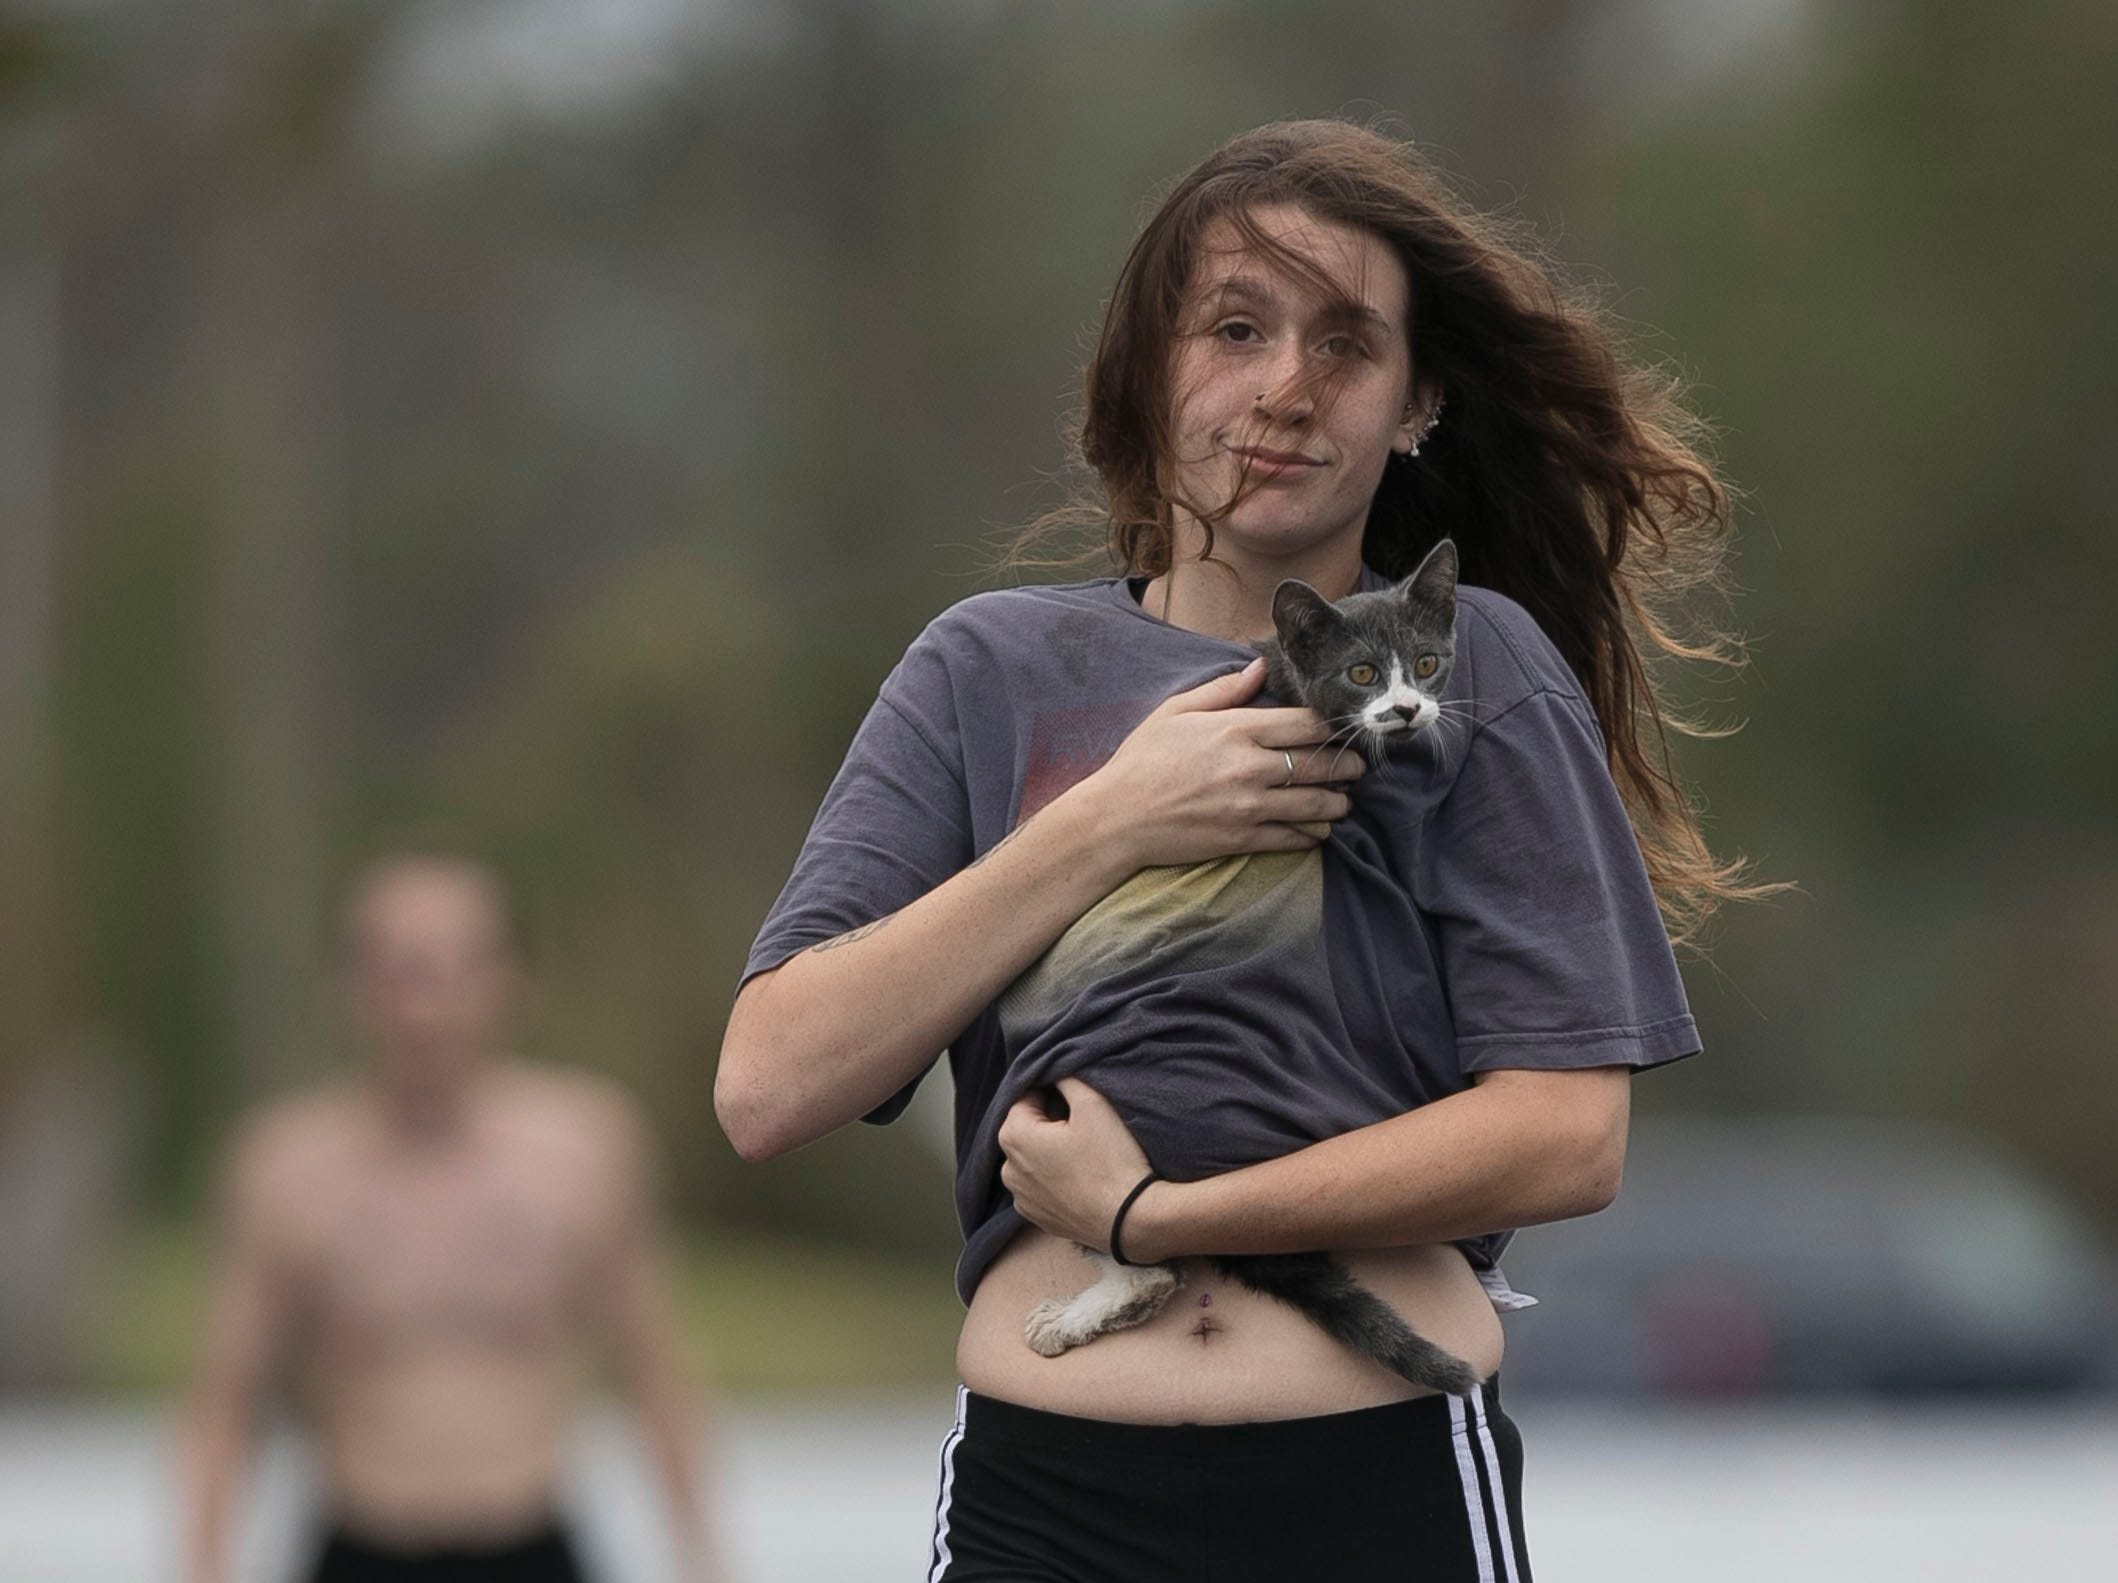 Amanda Mason carries a cat she rescued from her neighborhood off of Nine Foot Road, Sunday, Sept. 16, 2018, in Newport, N.C. Mason and her partner Zack McWilliams visited their damaged home and found the displaced cat and carried it out to safety. Their home was flooded by fast rising water from a tributary of the Newport River on Friday night.